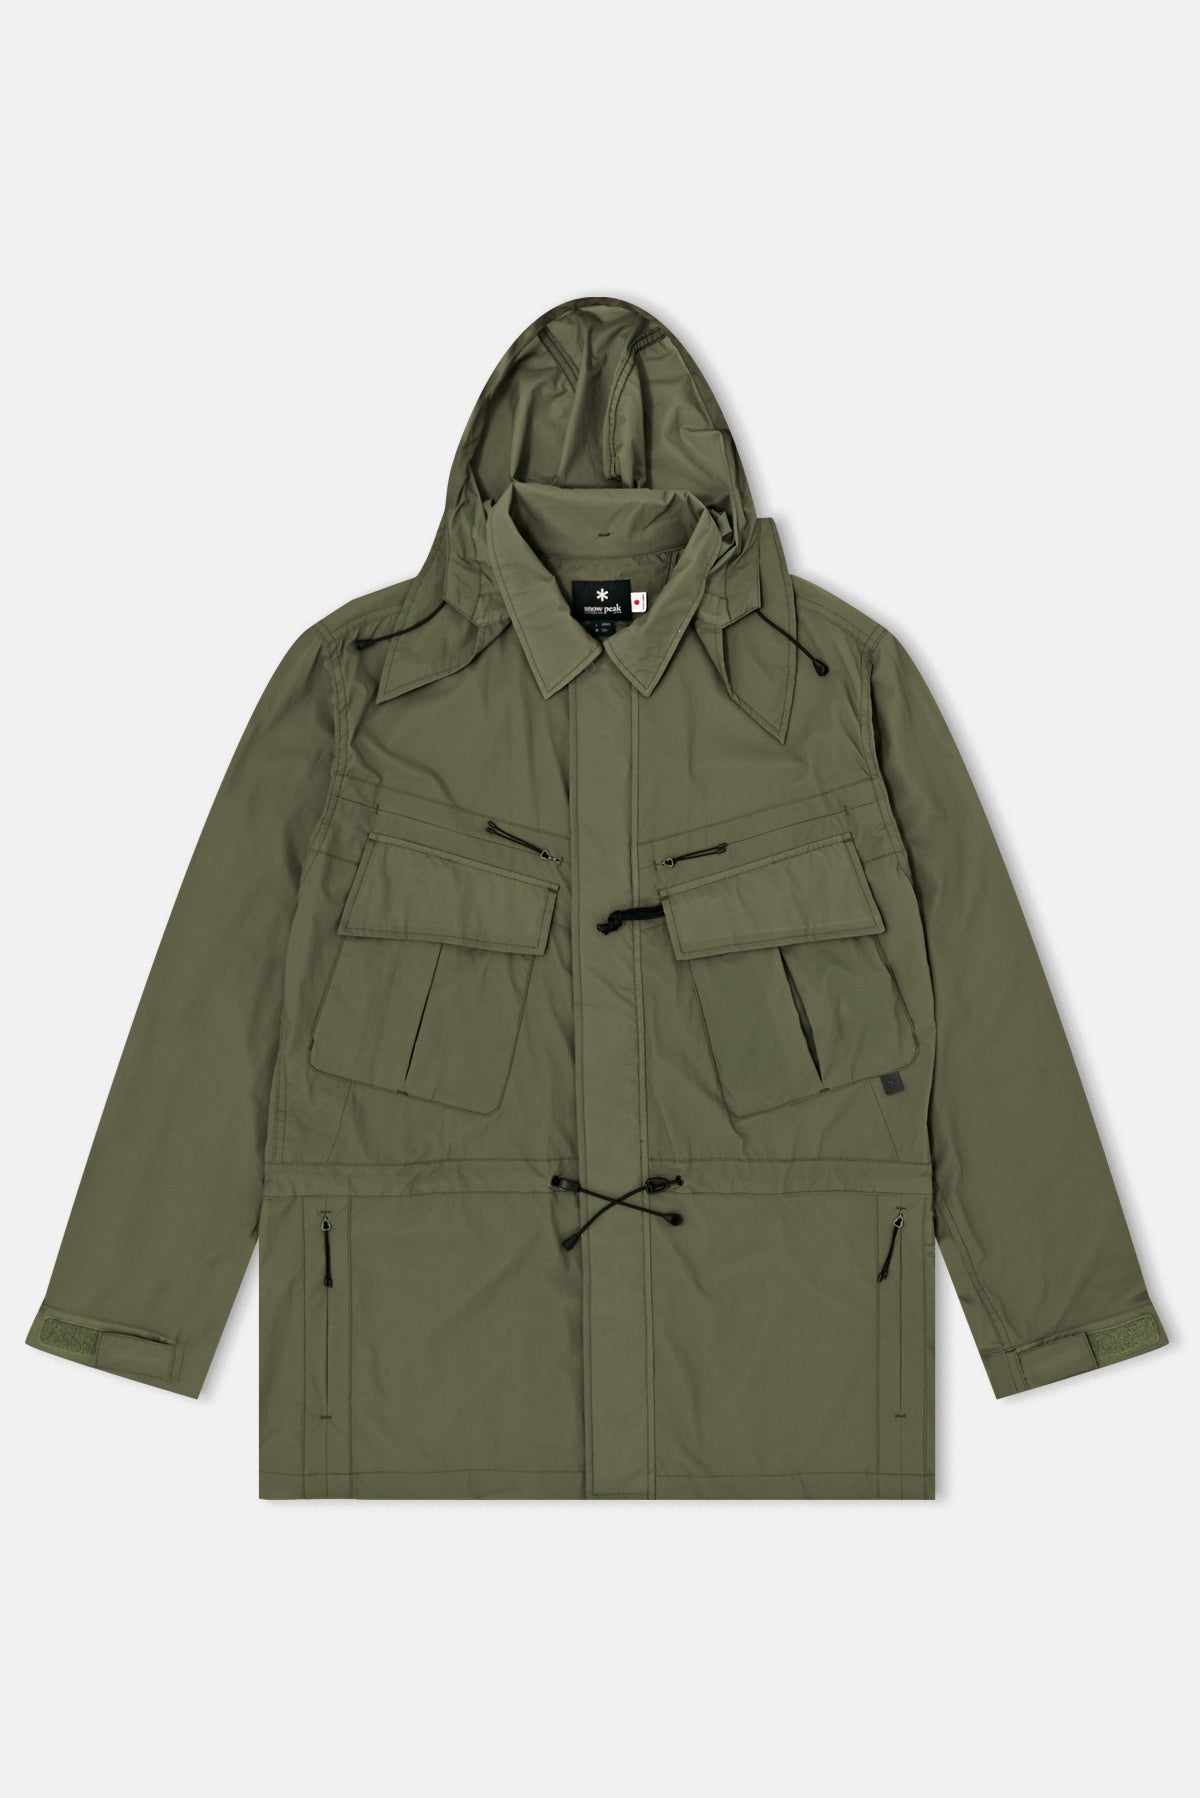 Snow Peak Rain   Wind Resistant Jacket available from Priory 21bdc802189e